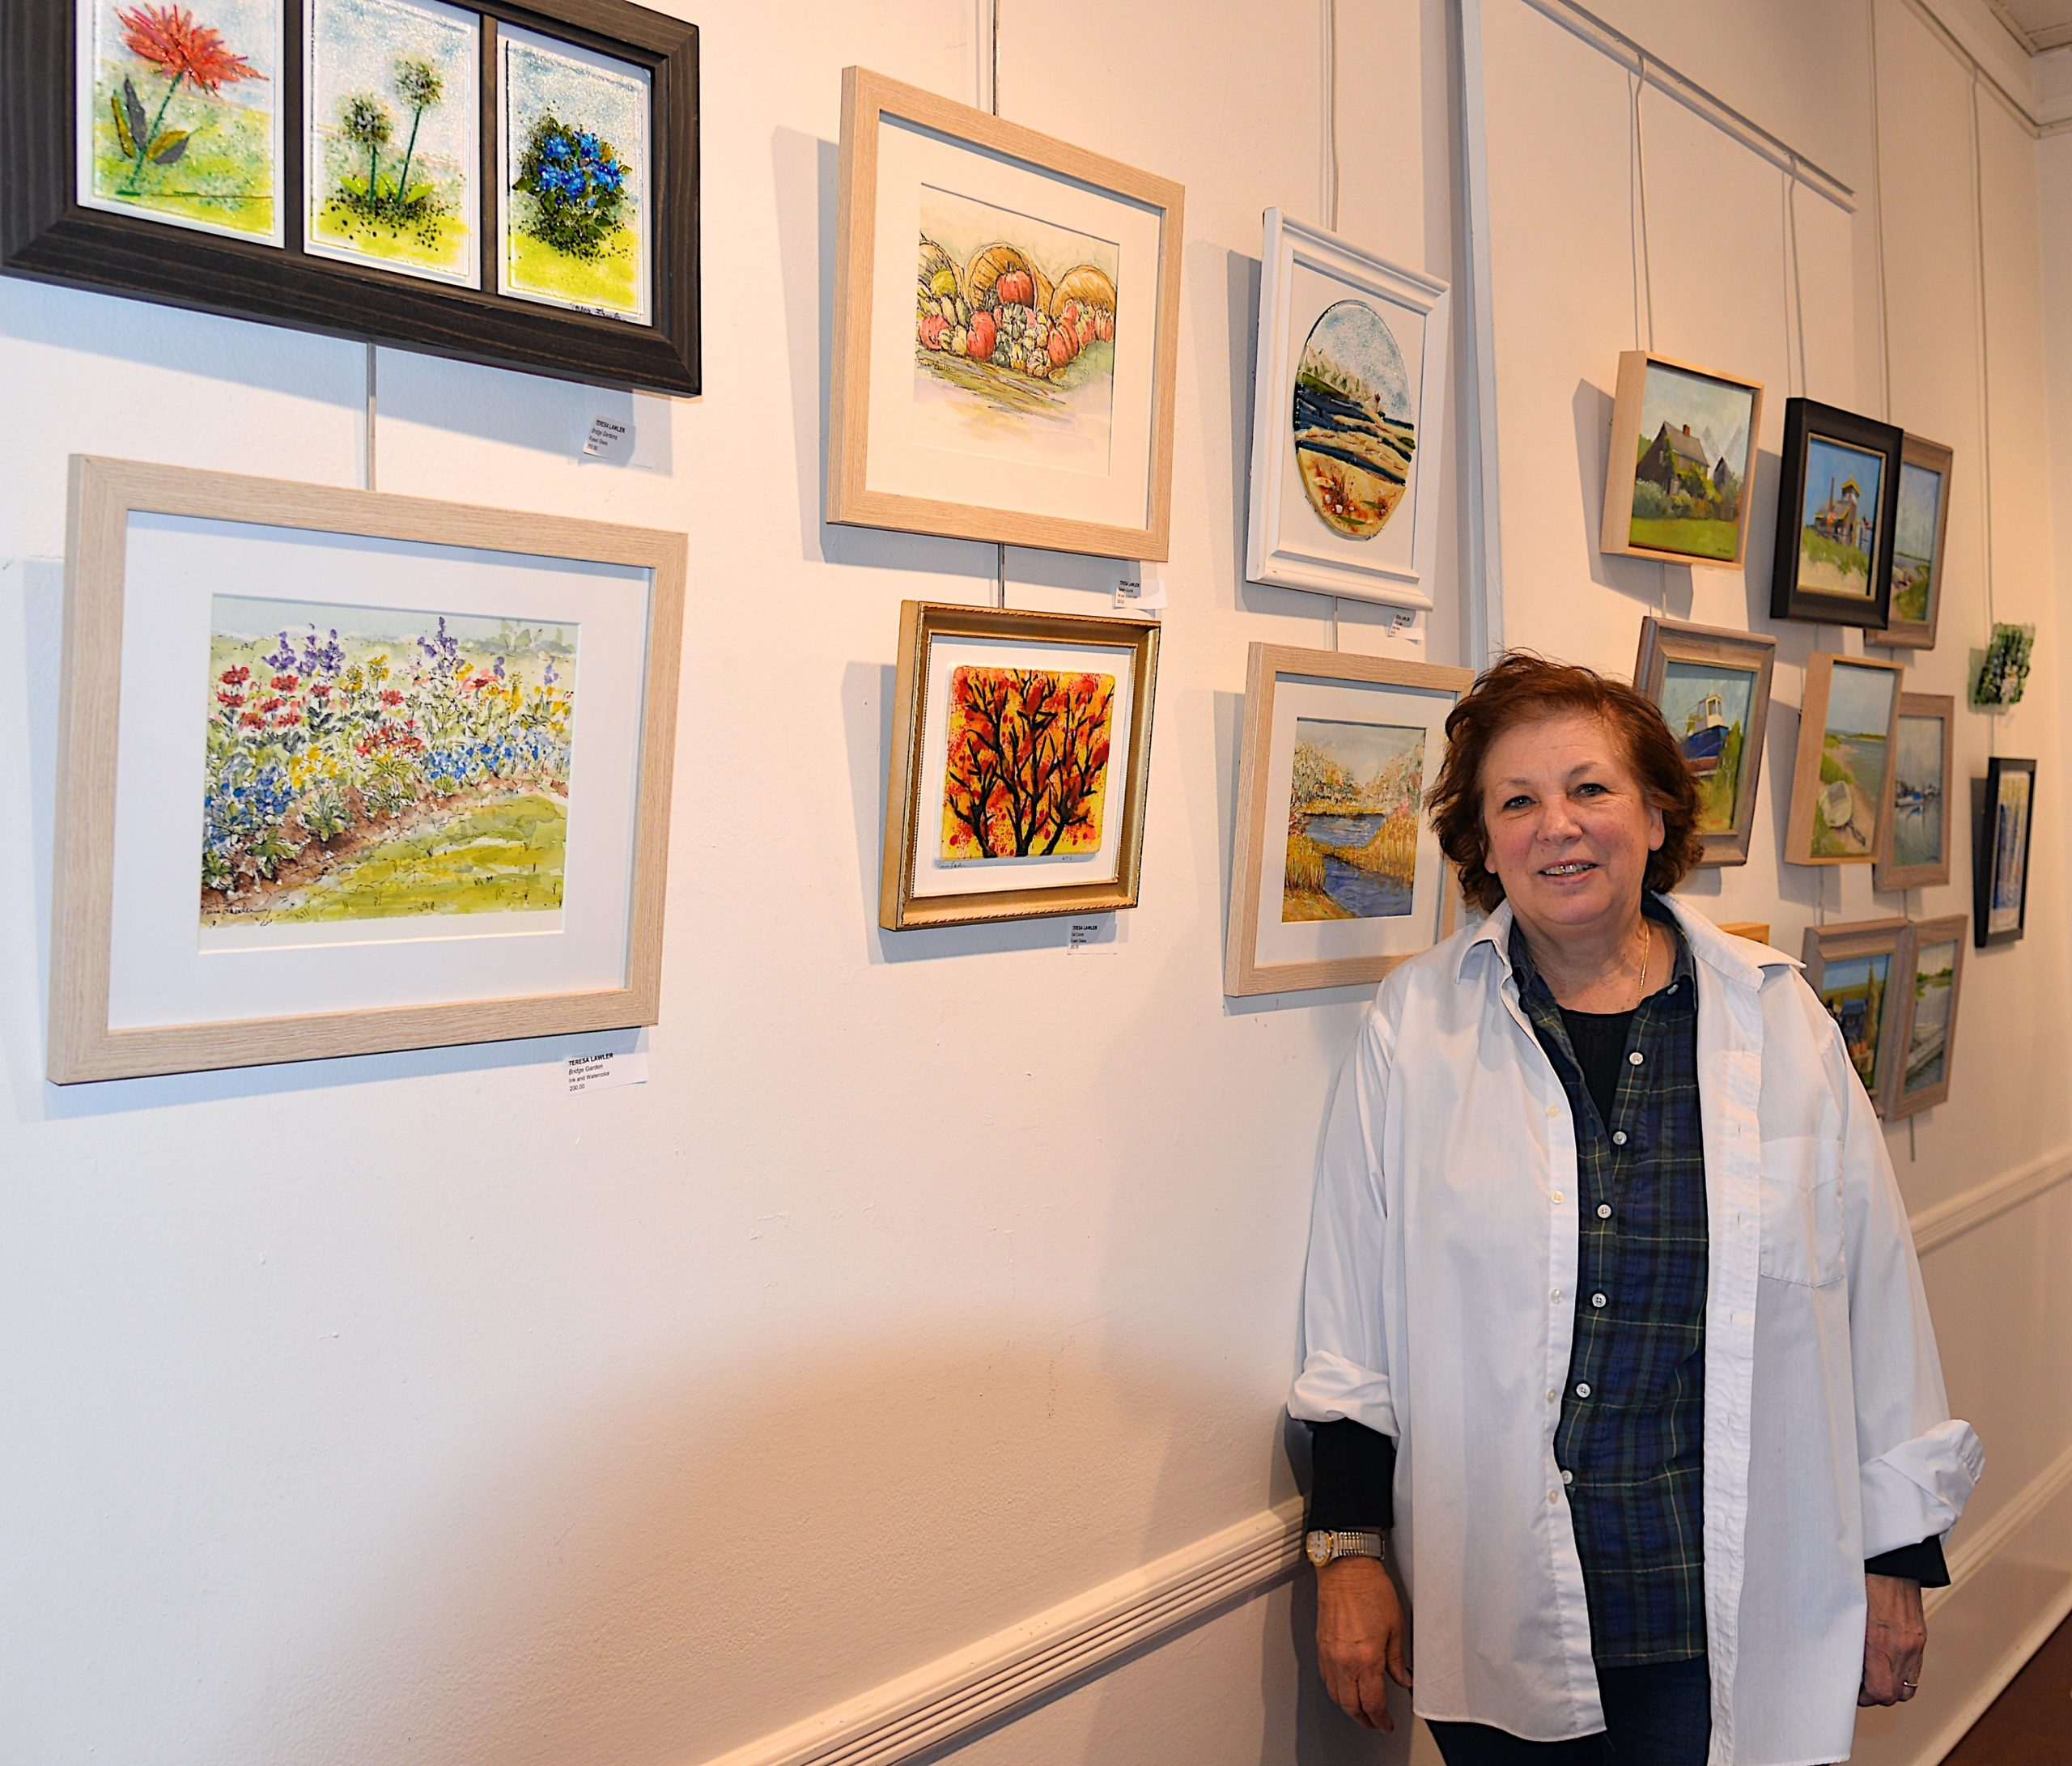 The Artists Alliance of East Hampton held an art exhibit at Ashawagh Hall this weekend, featuring then work of the Wednesday Group, Plein-Air artists using local scenery for inspiration There were also workshops in painting and glass fusion. Teresa Lawler with her artwork.  KYRIL BROMLEY